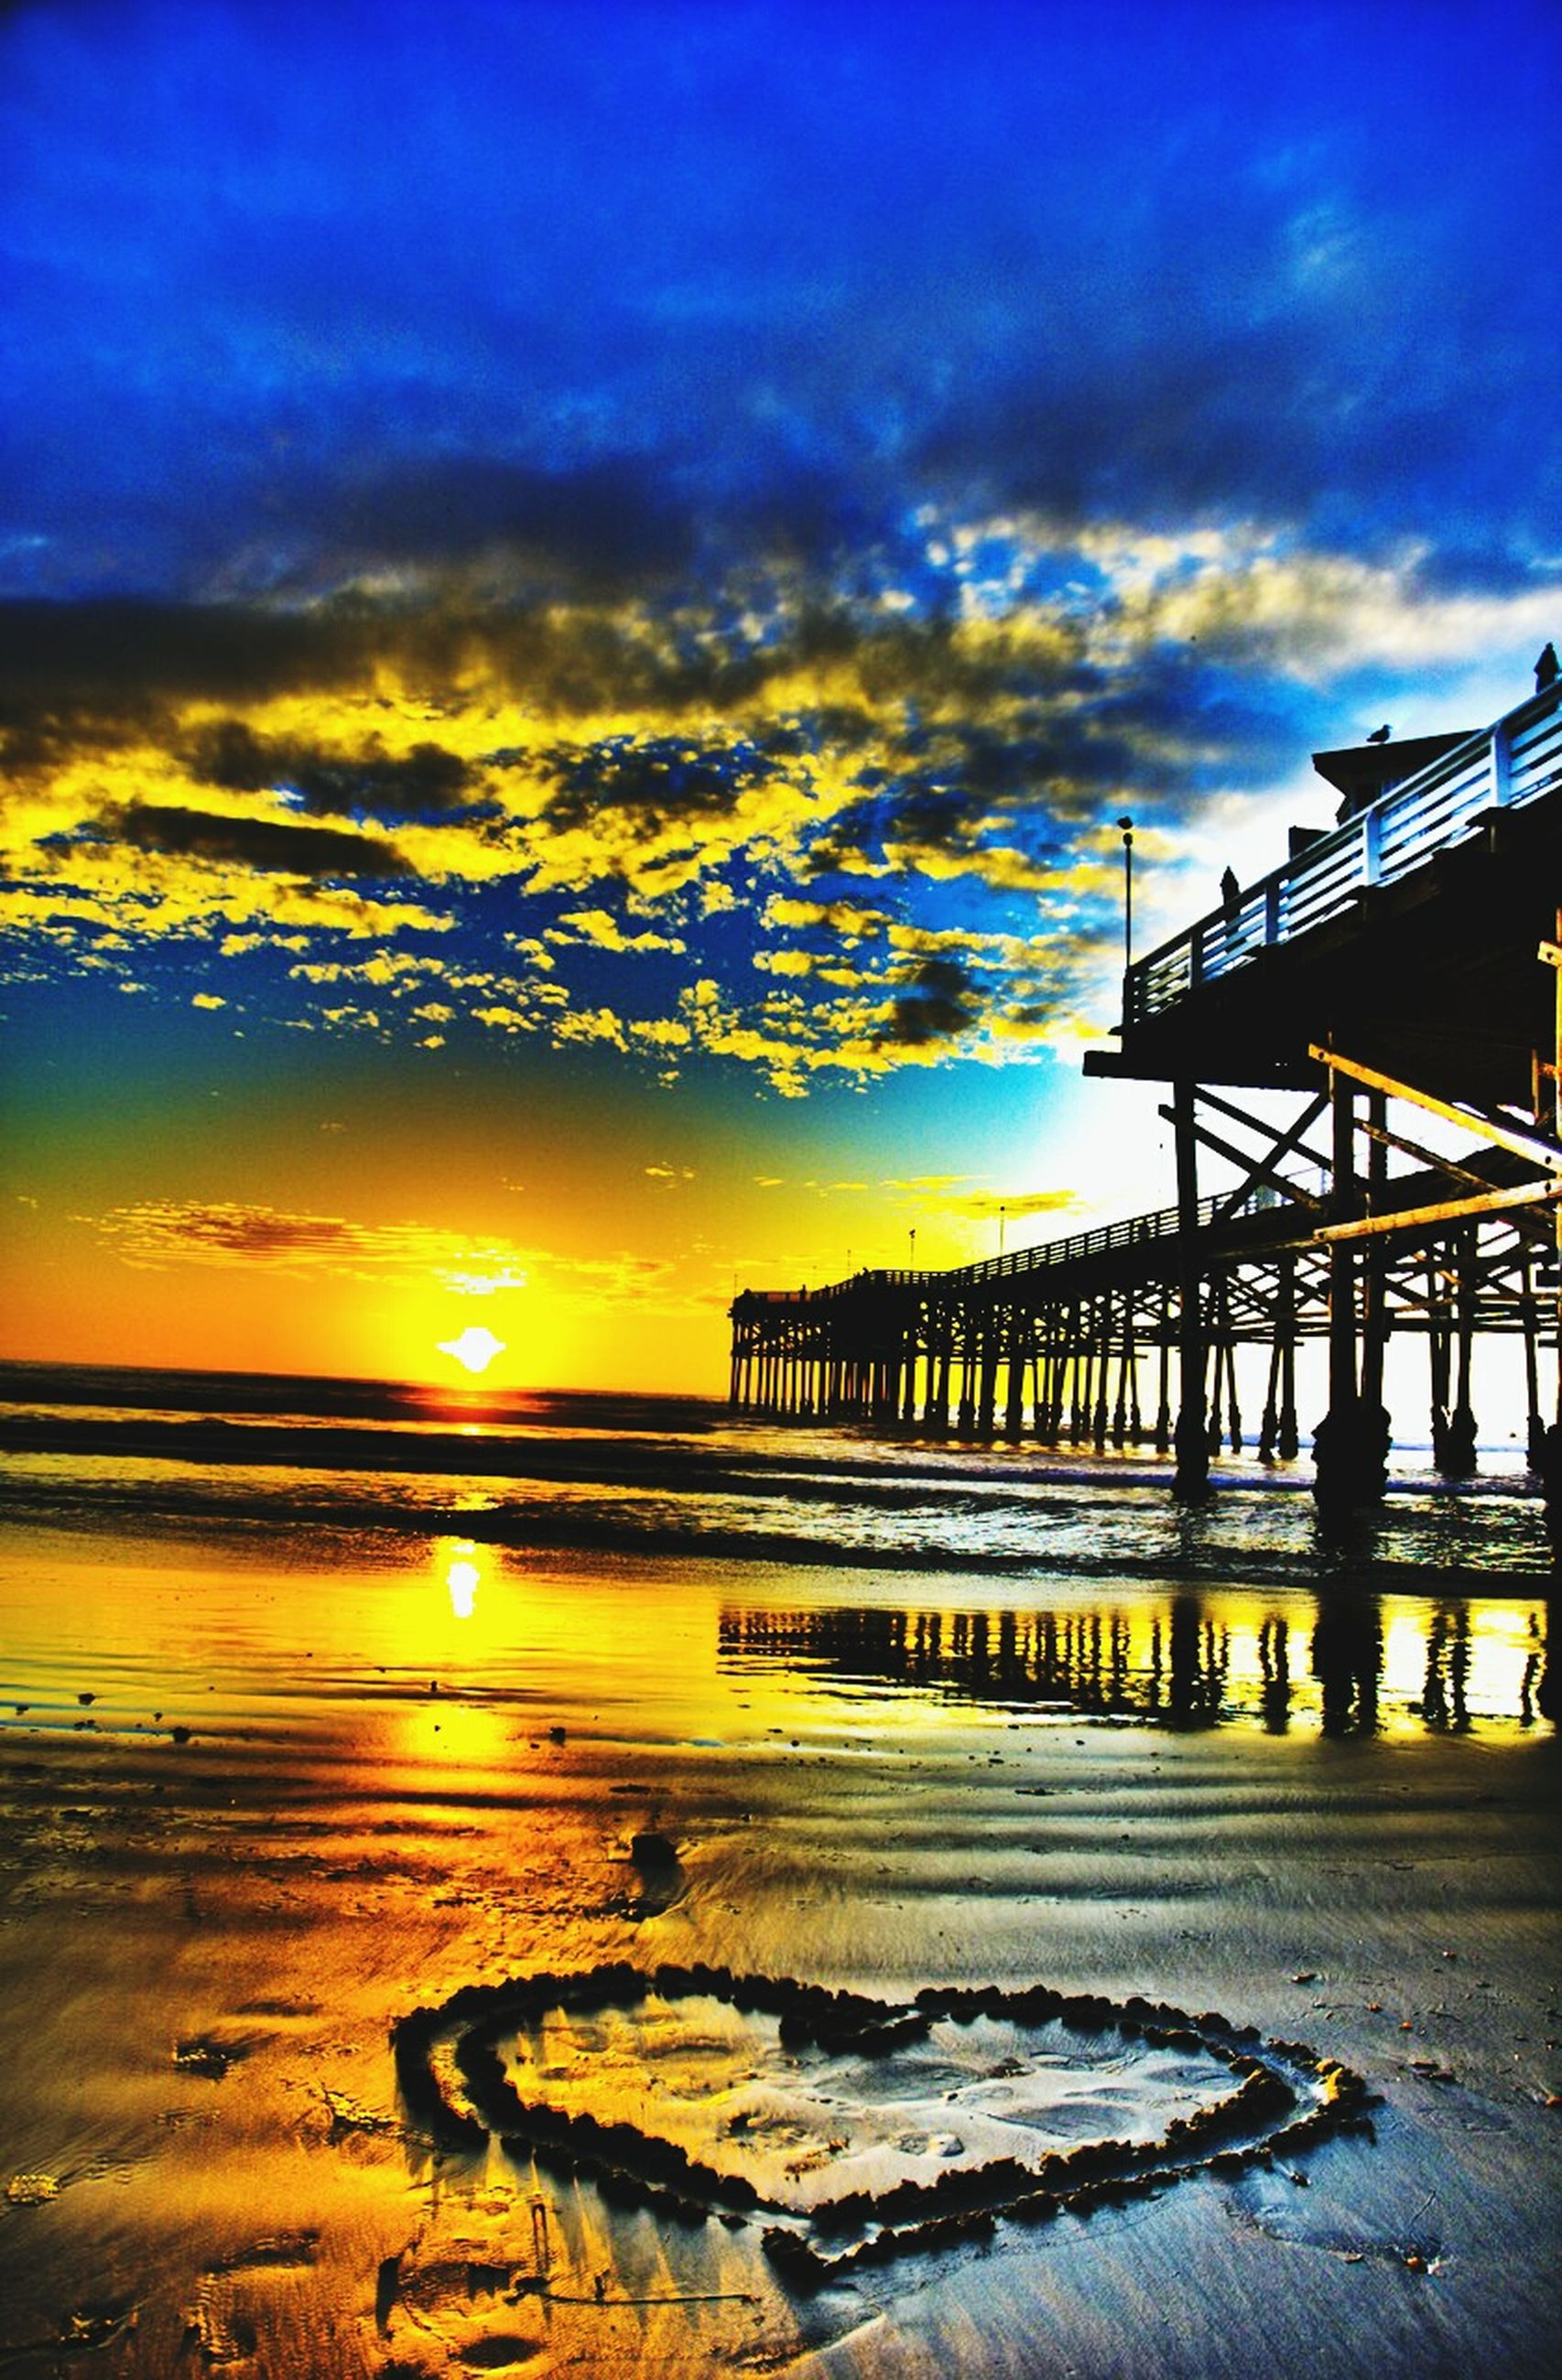 sunset, sky, water, cloud - sky, sea, horizon over water, orange color, built structure, scenics, beauty in nature, pier, beach, tranquility, nature, cloud, architecture, tranquil scene, reflection, shore, idyllic